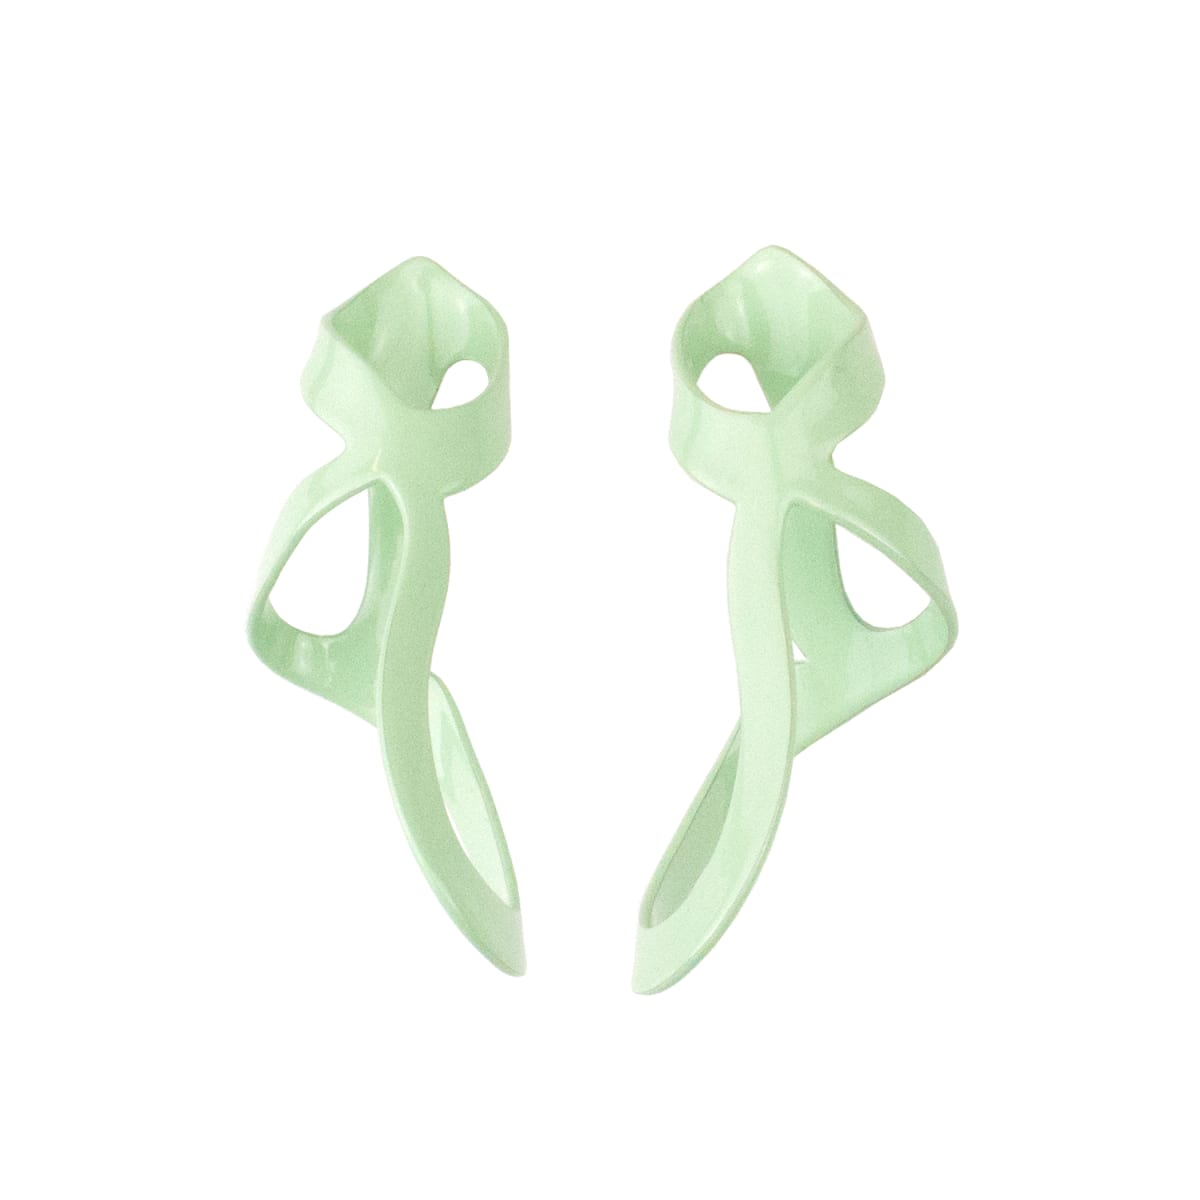 Laura Wood, Open Weave Drip Earrings